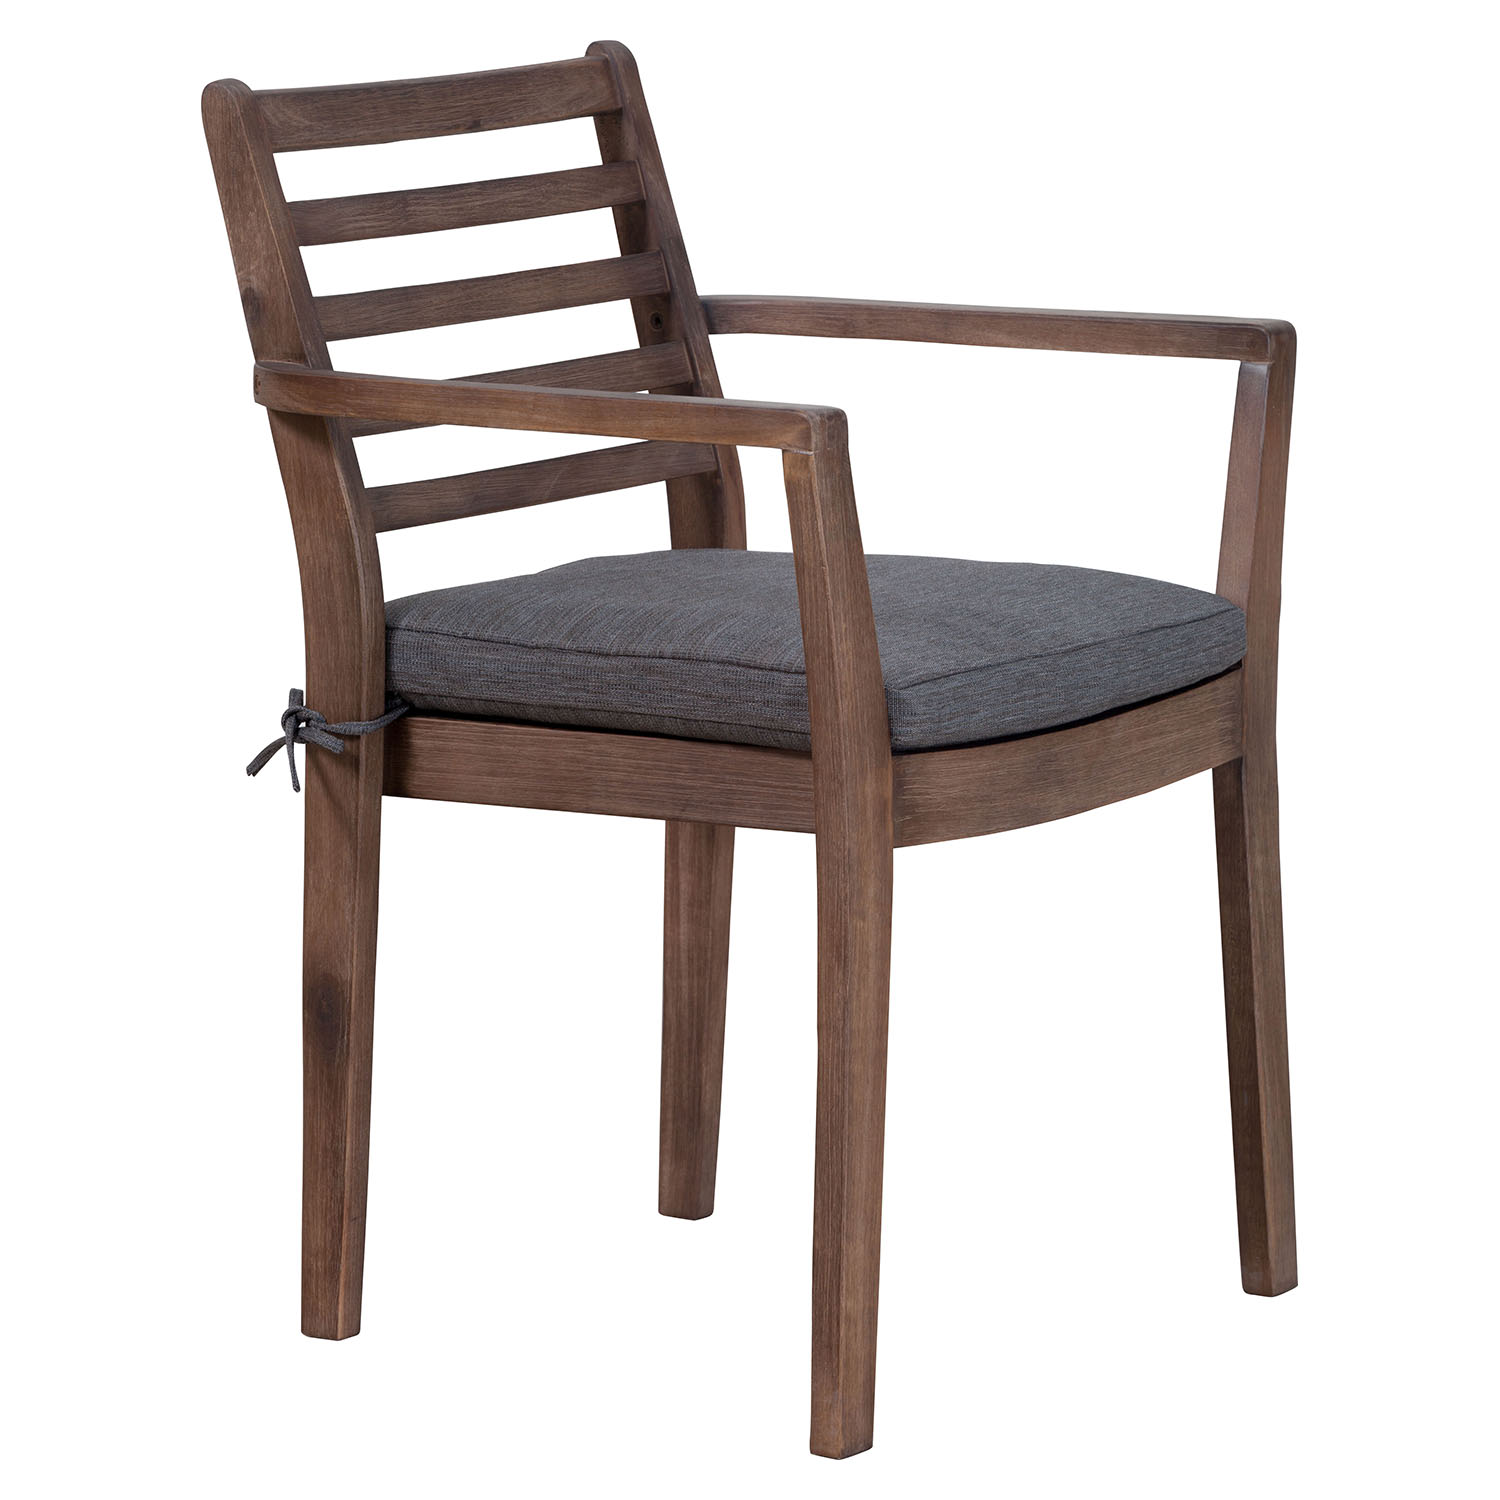 Sancerre Dining Chair - Natural and Gray - ZM-703589